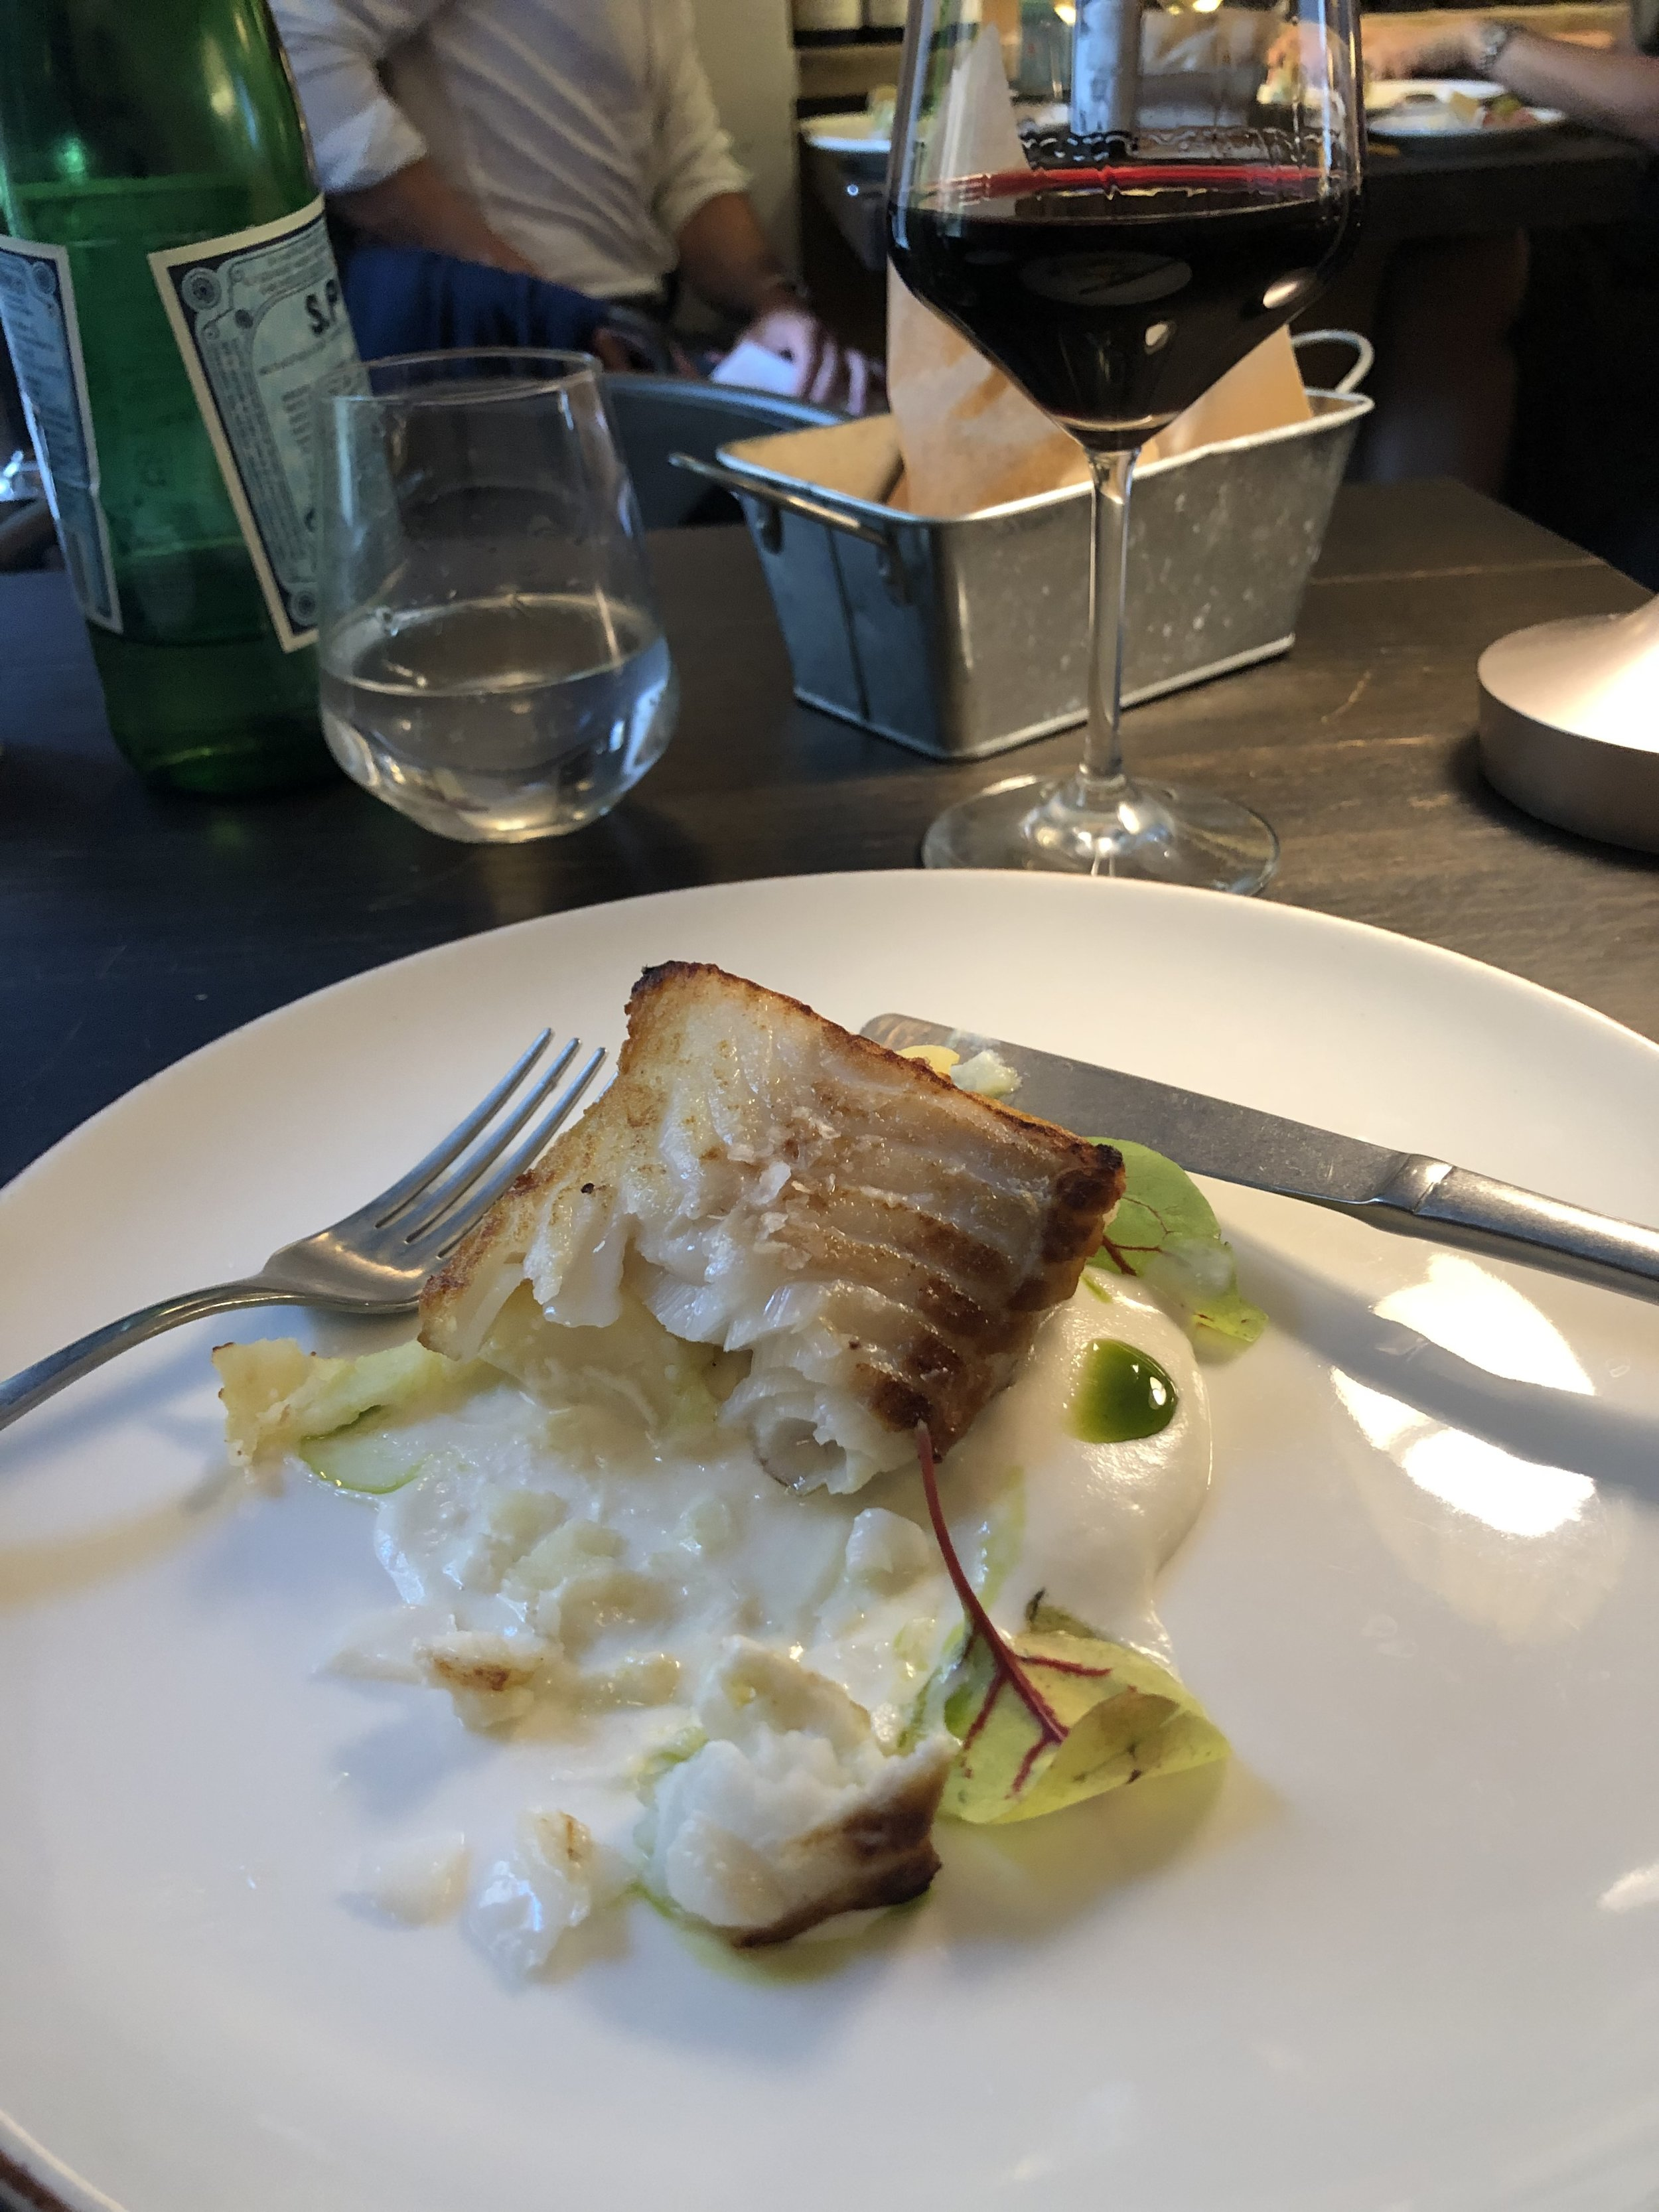 My cod at d'Alba. Never remember to shoot the picture before trying the dish!